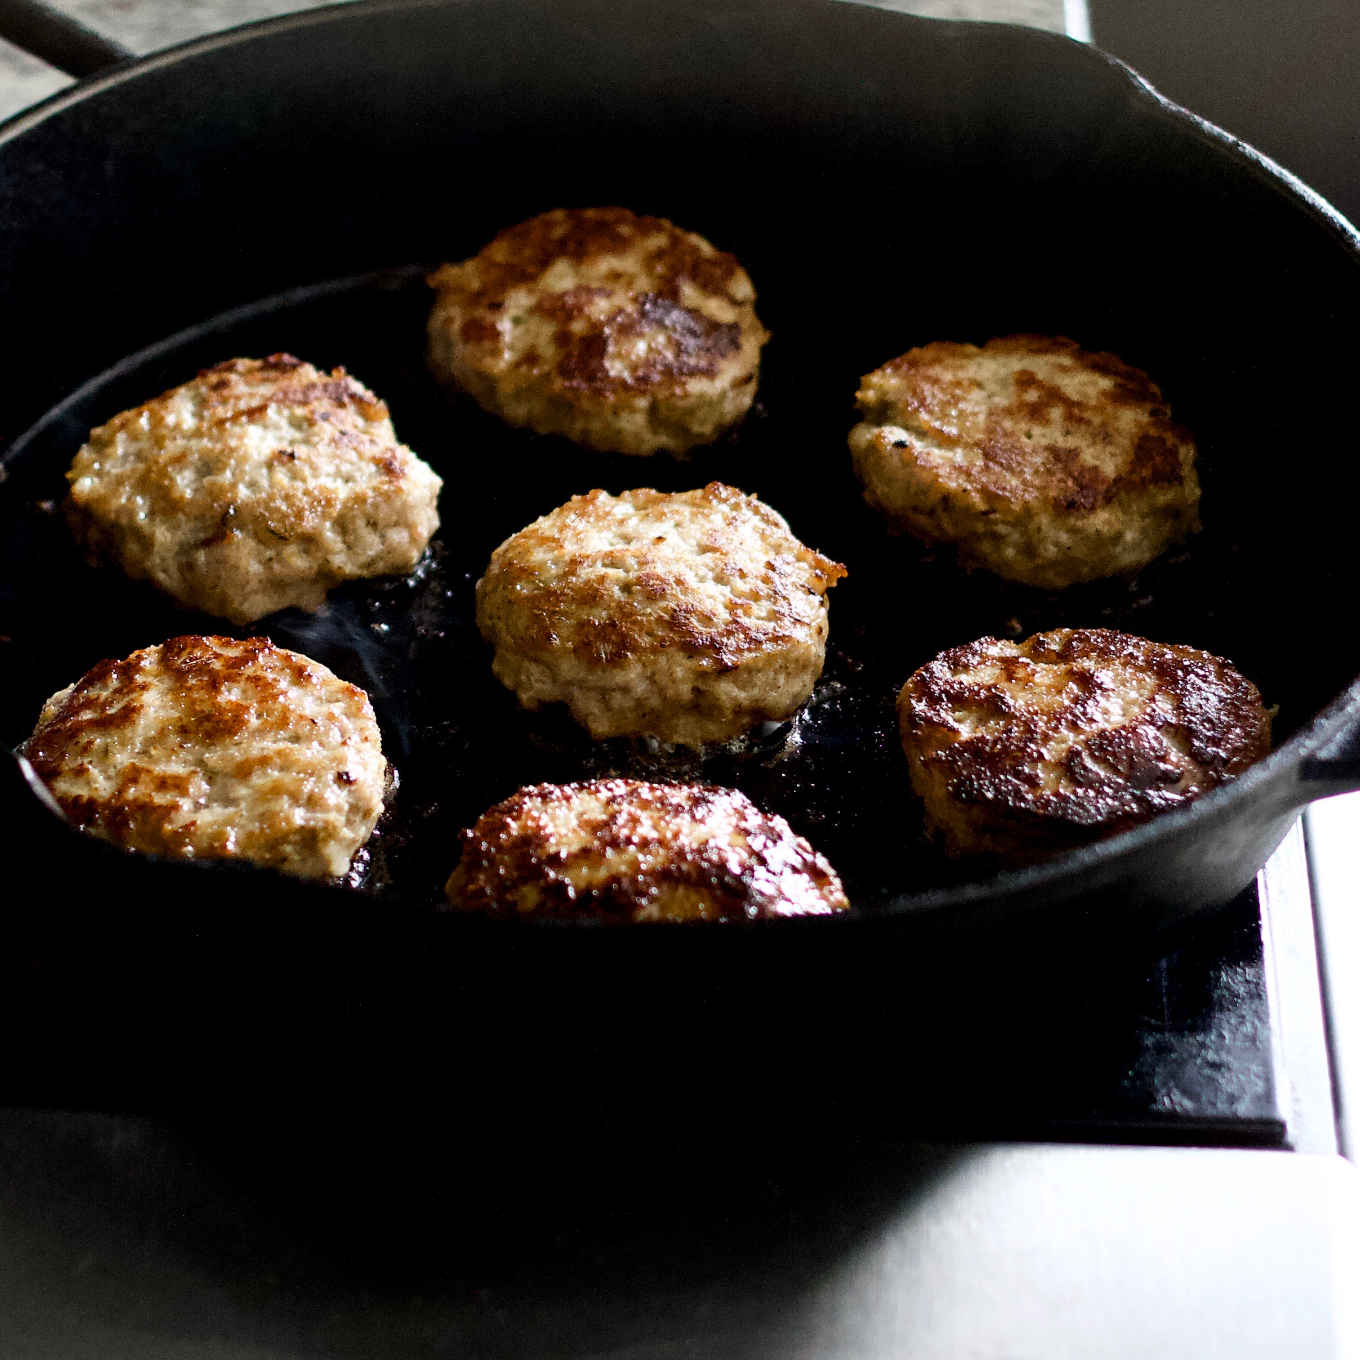 cooking breakfast sausage patties in cast iron skillet